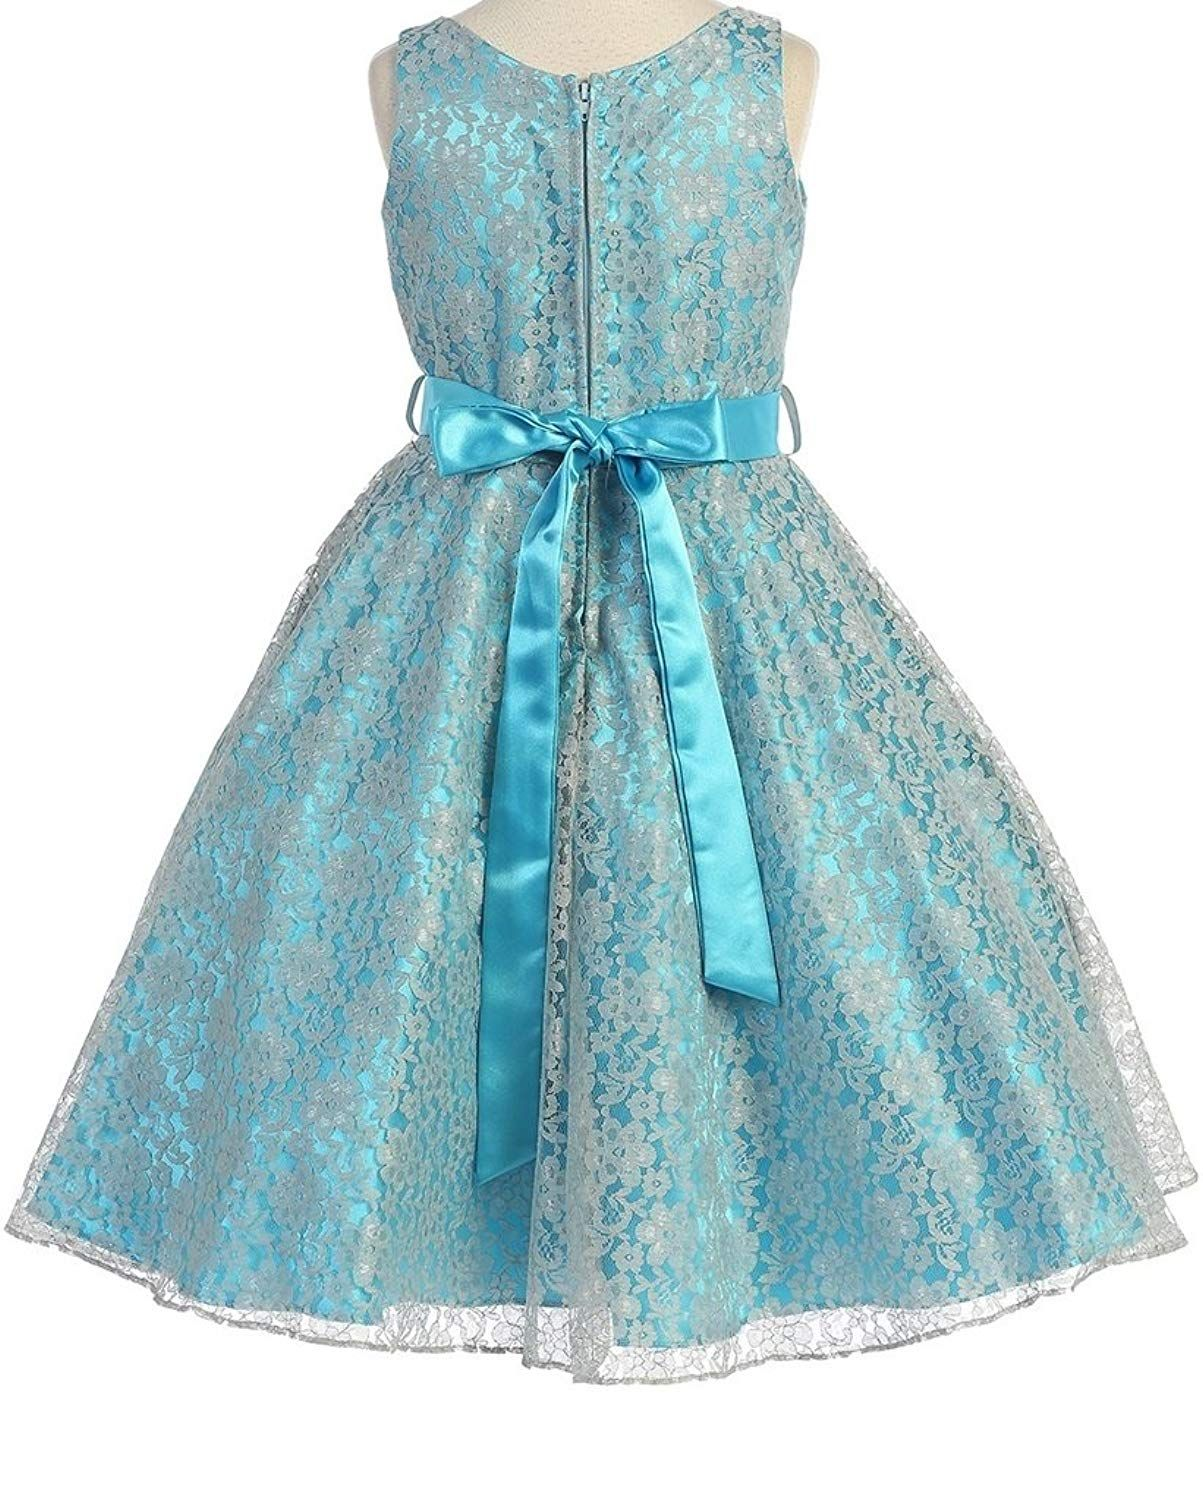 e81058fe66b Dreamer P V Neck Sleeveless Lace Floral Pattern Satin Sash Flower Girl  Dress Size 4-16     Click image to review more details. (This is an  affiliate link)   ...